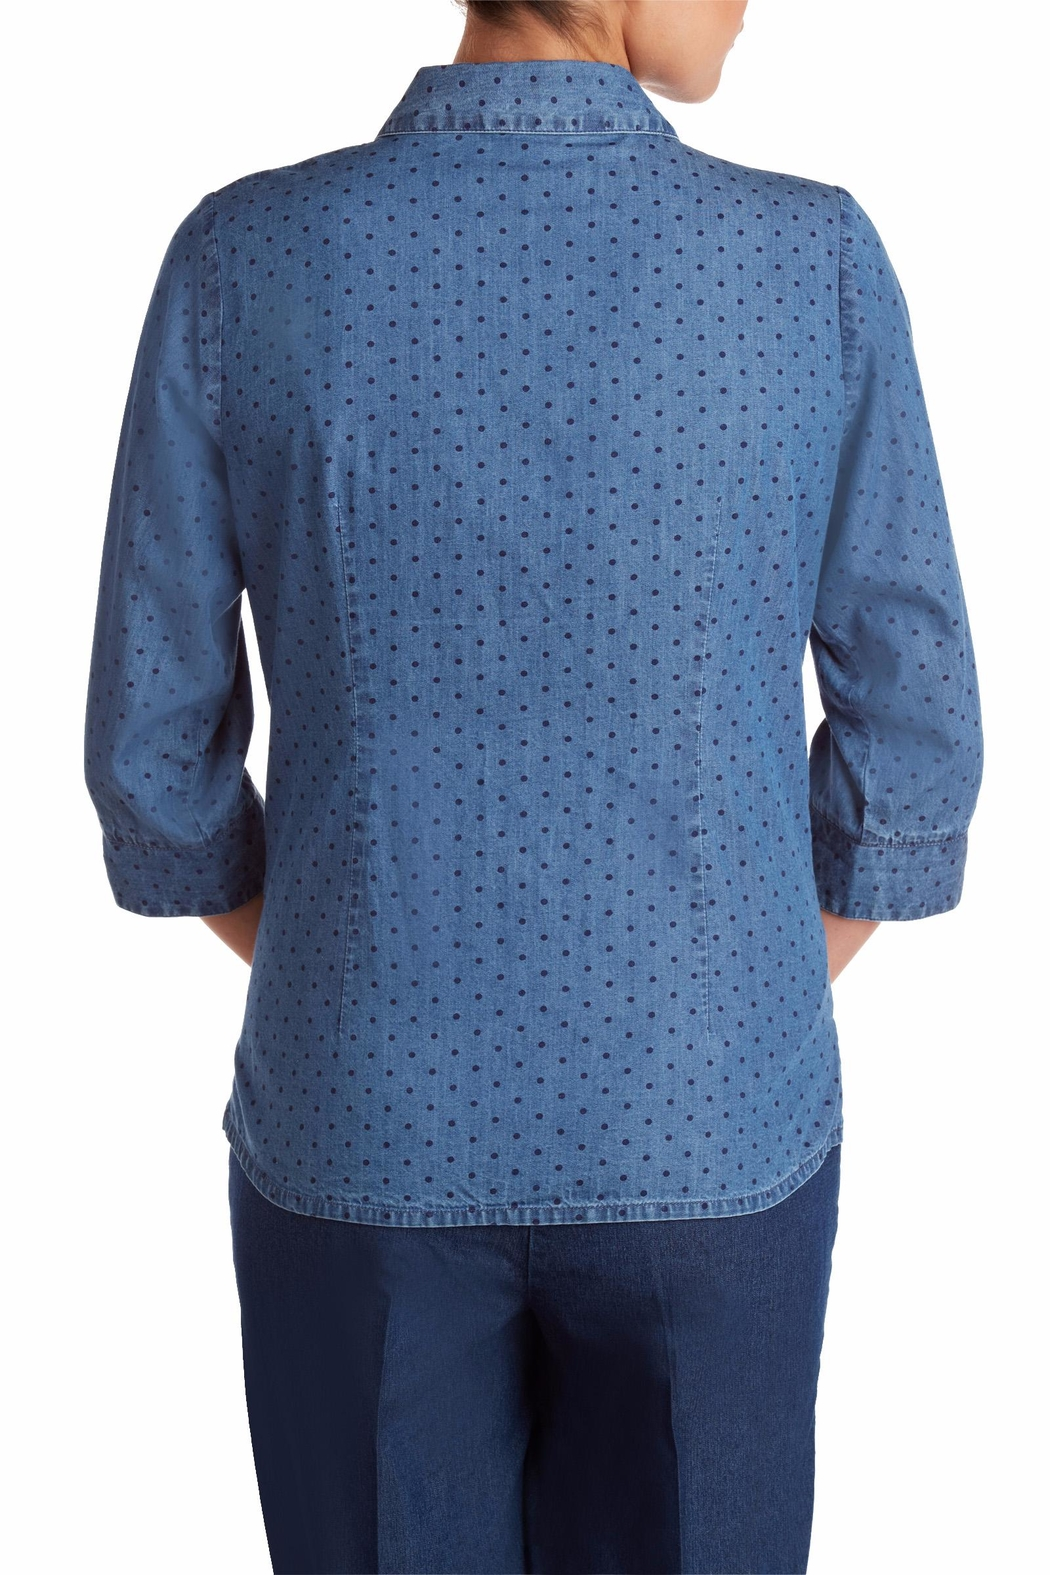 Allison Daley Navy Dot Blouse - Side Cropped Image